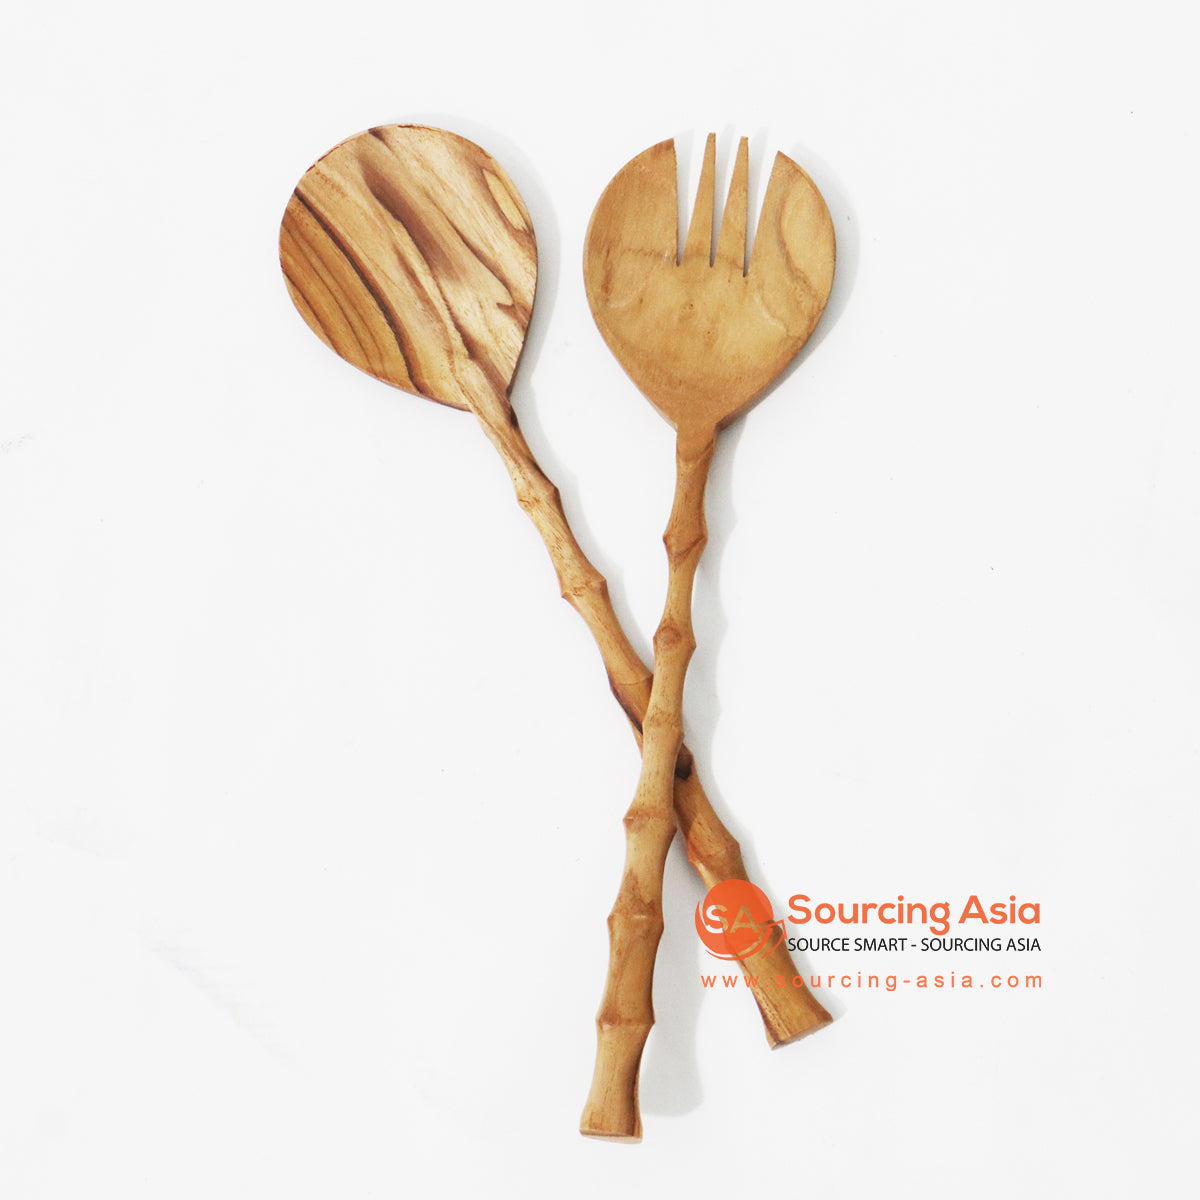 MSB008 TEAK WOOD SALAD SET